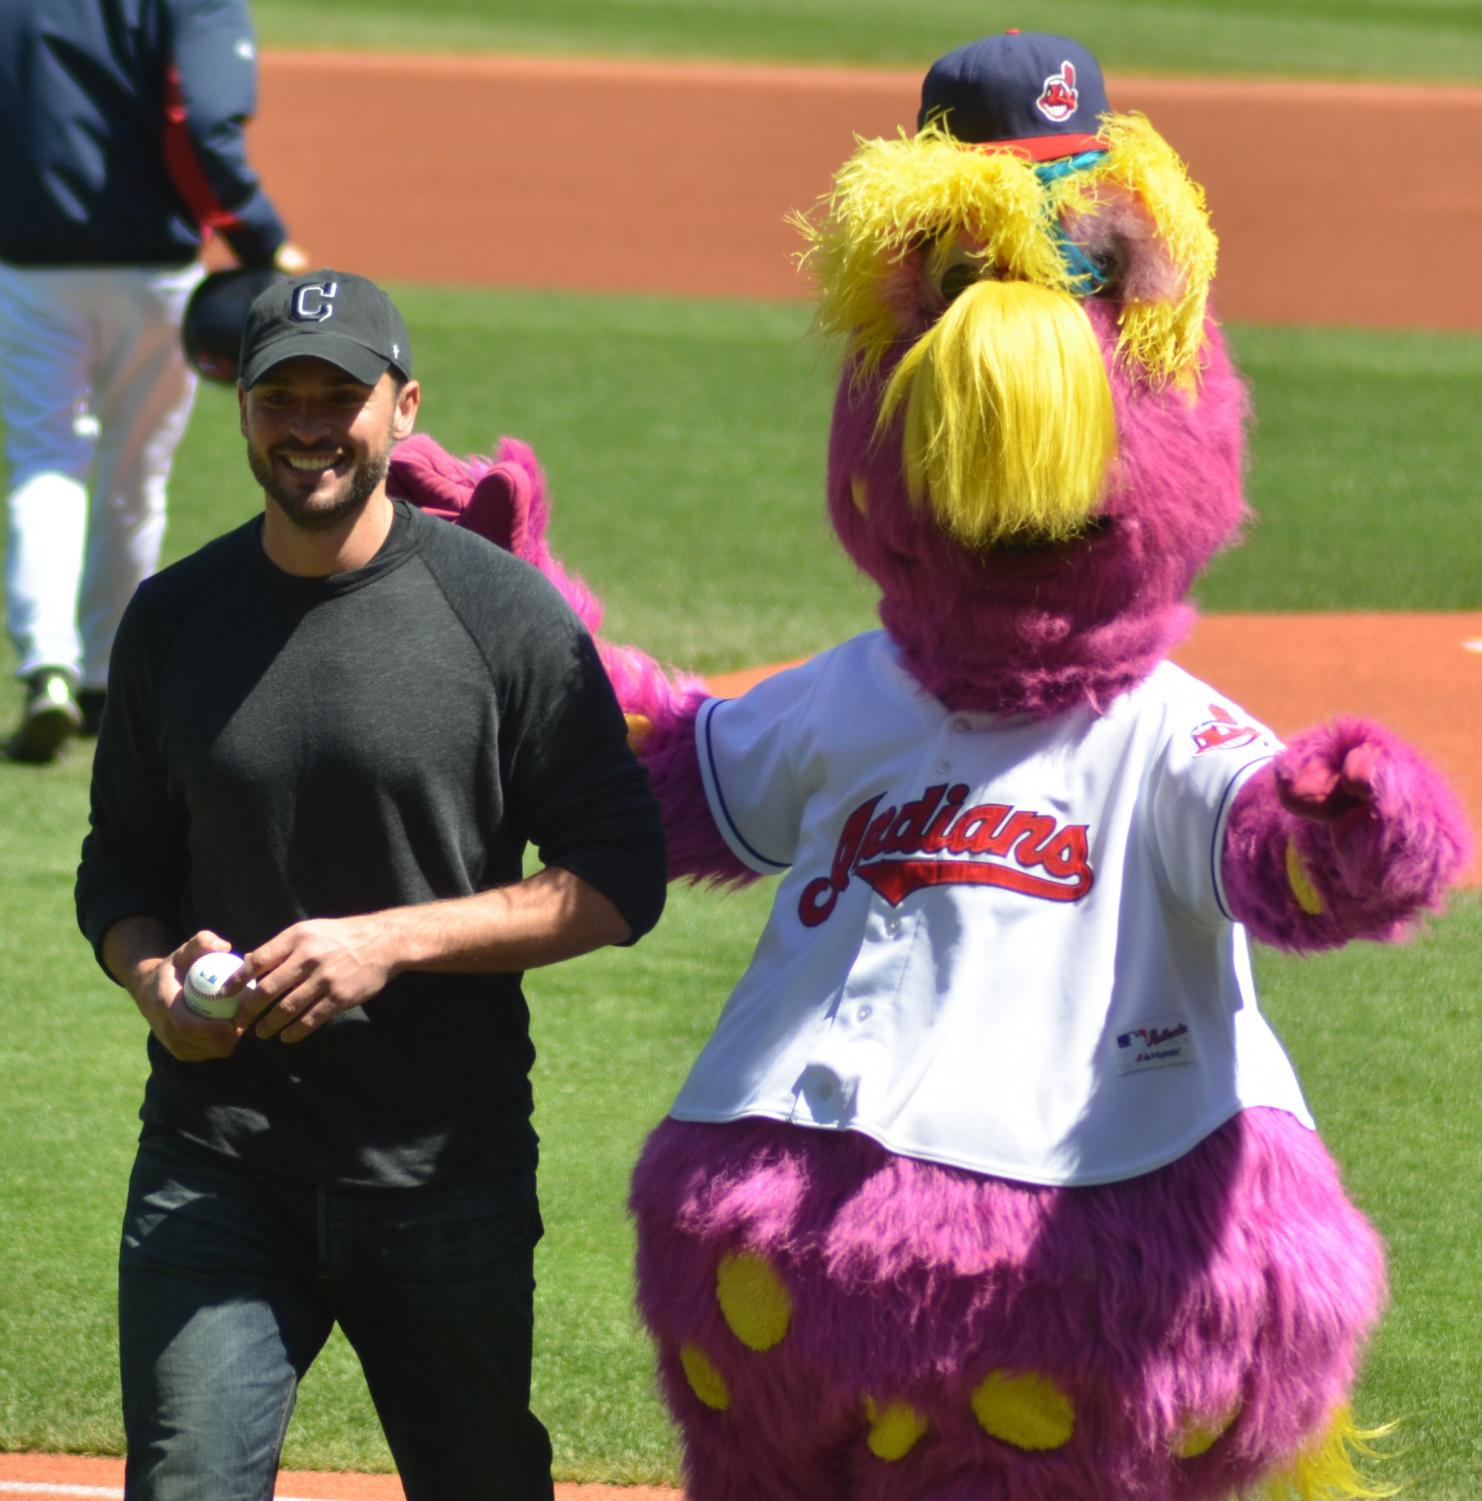 The Cleveland Indians mascot Slider Mae dons the Cleveland hat with the soon to be removed logo.